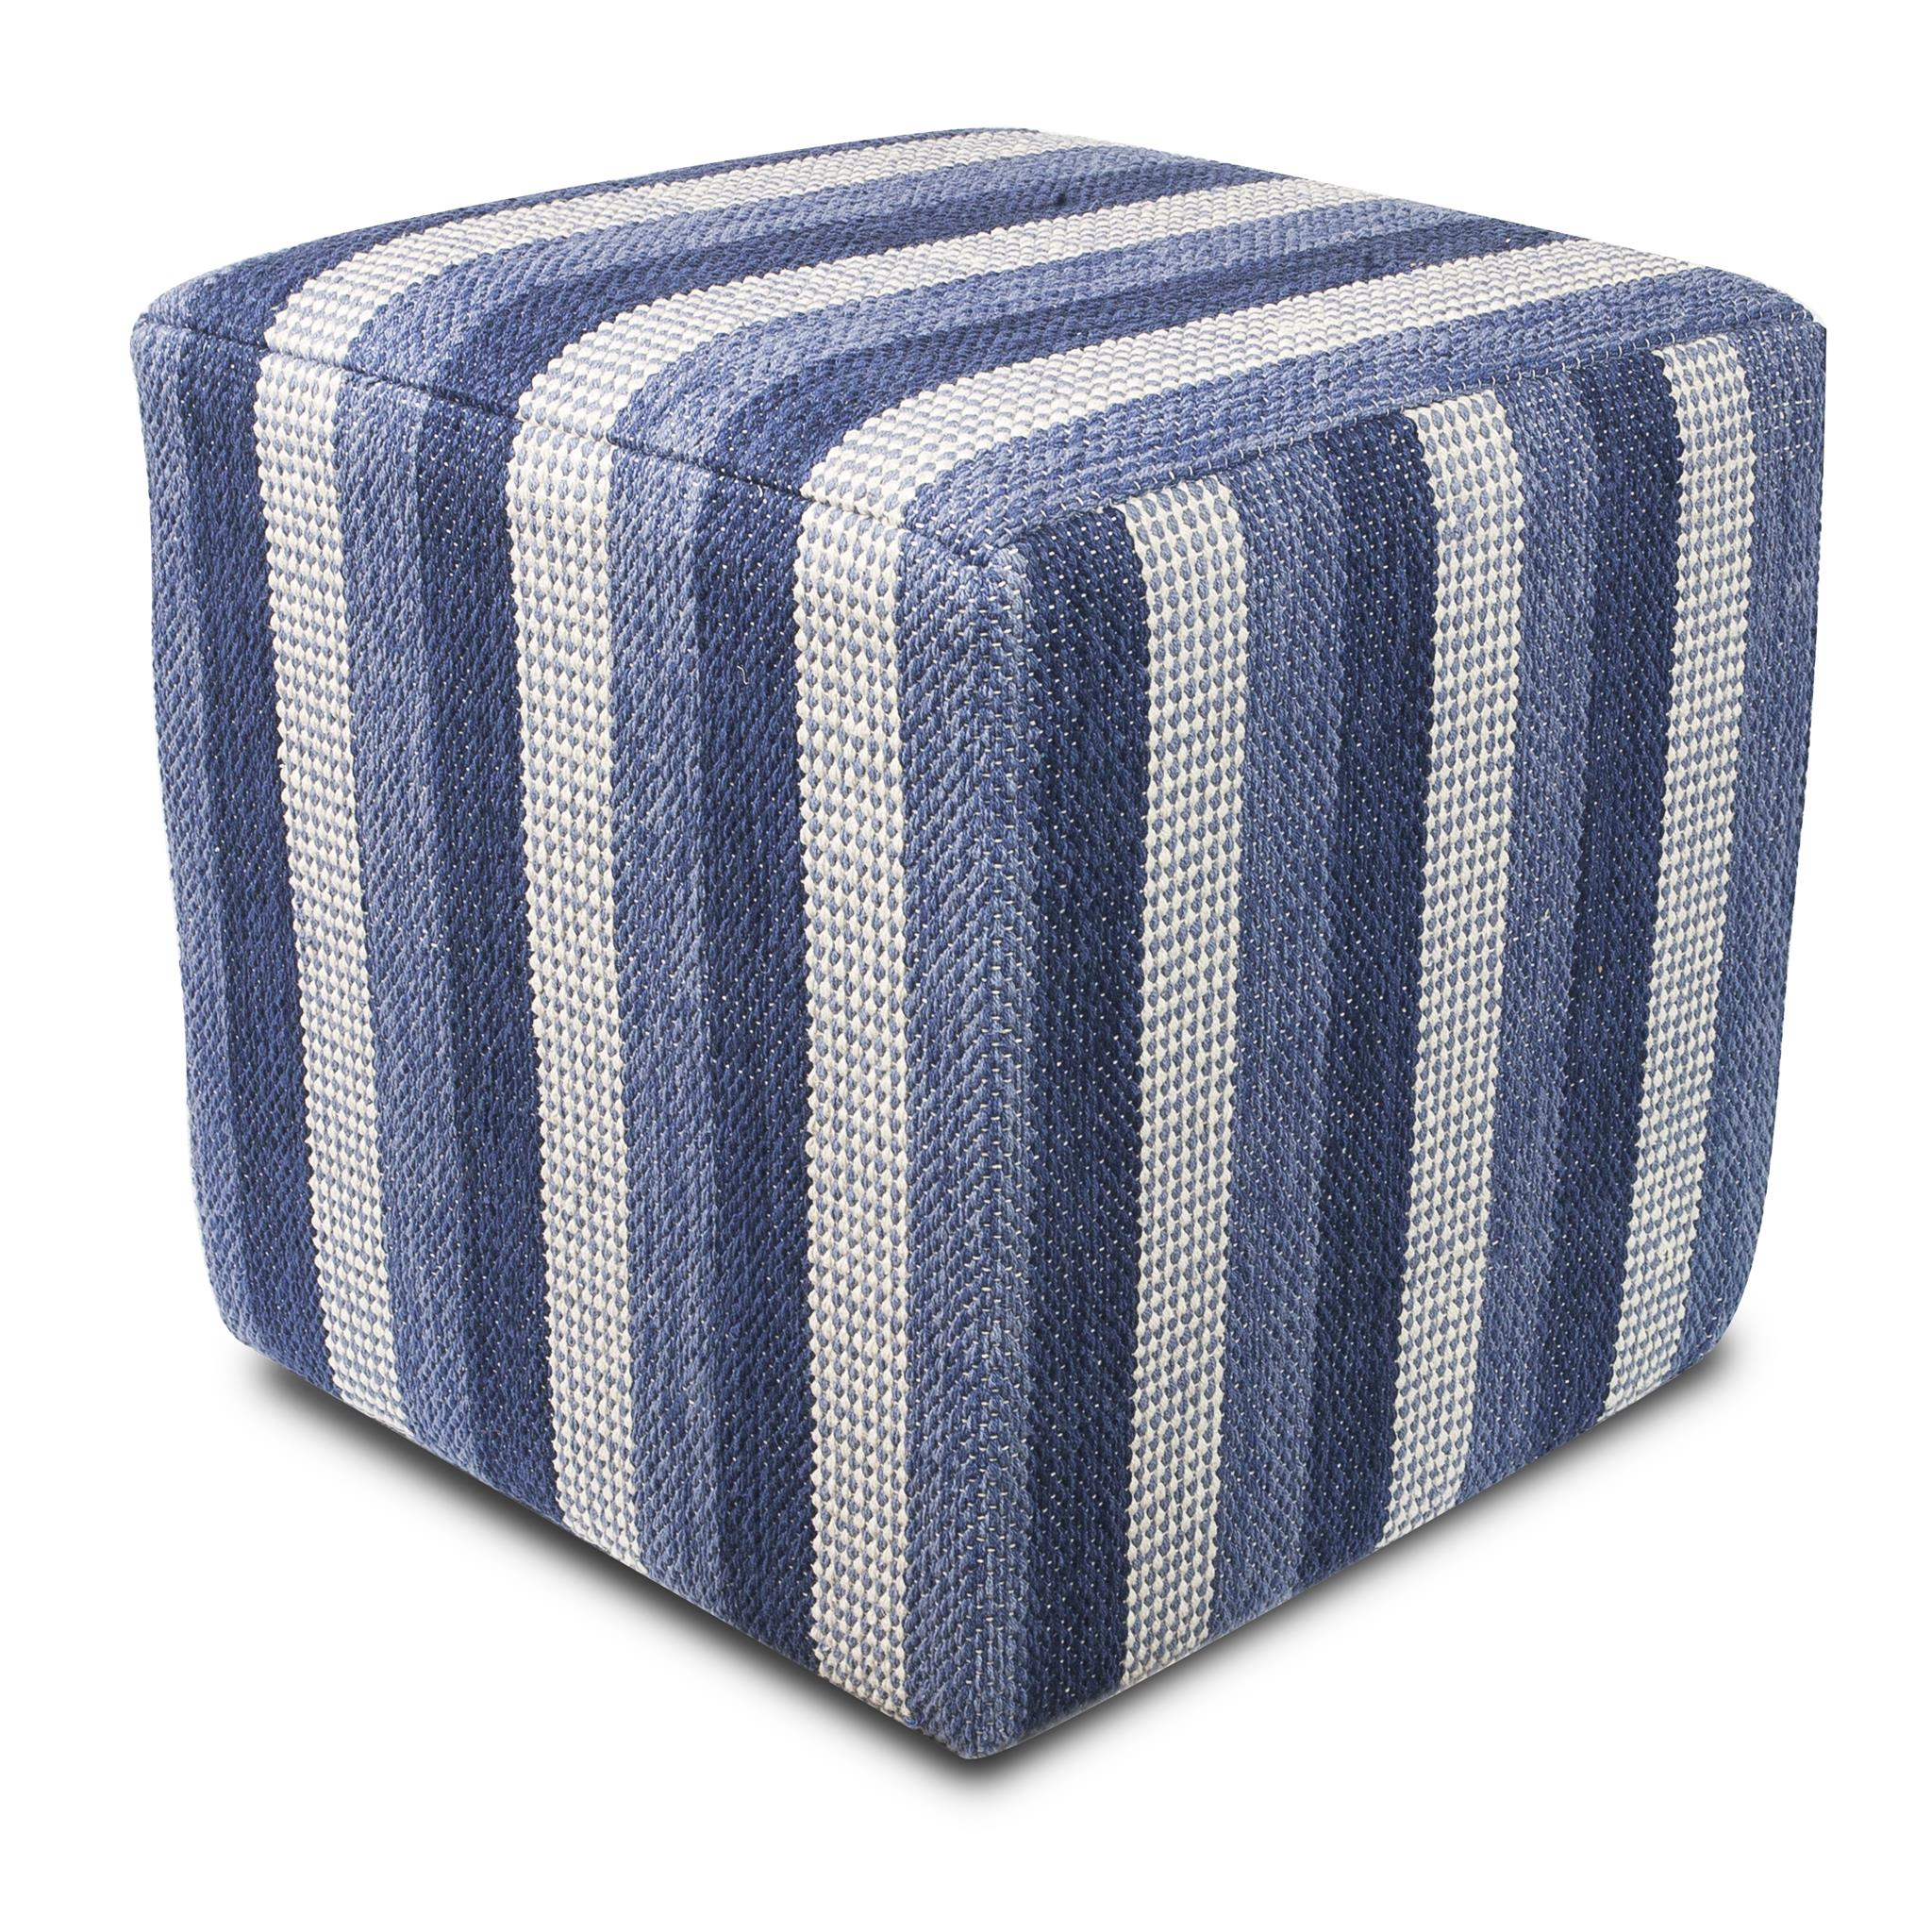 F838 Denim Landscapes Pouf